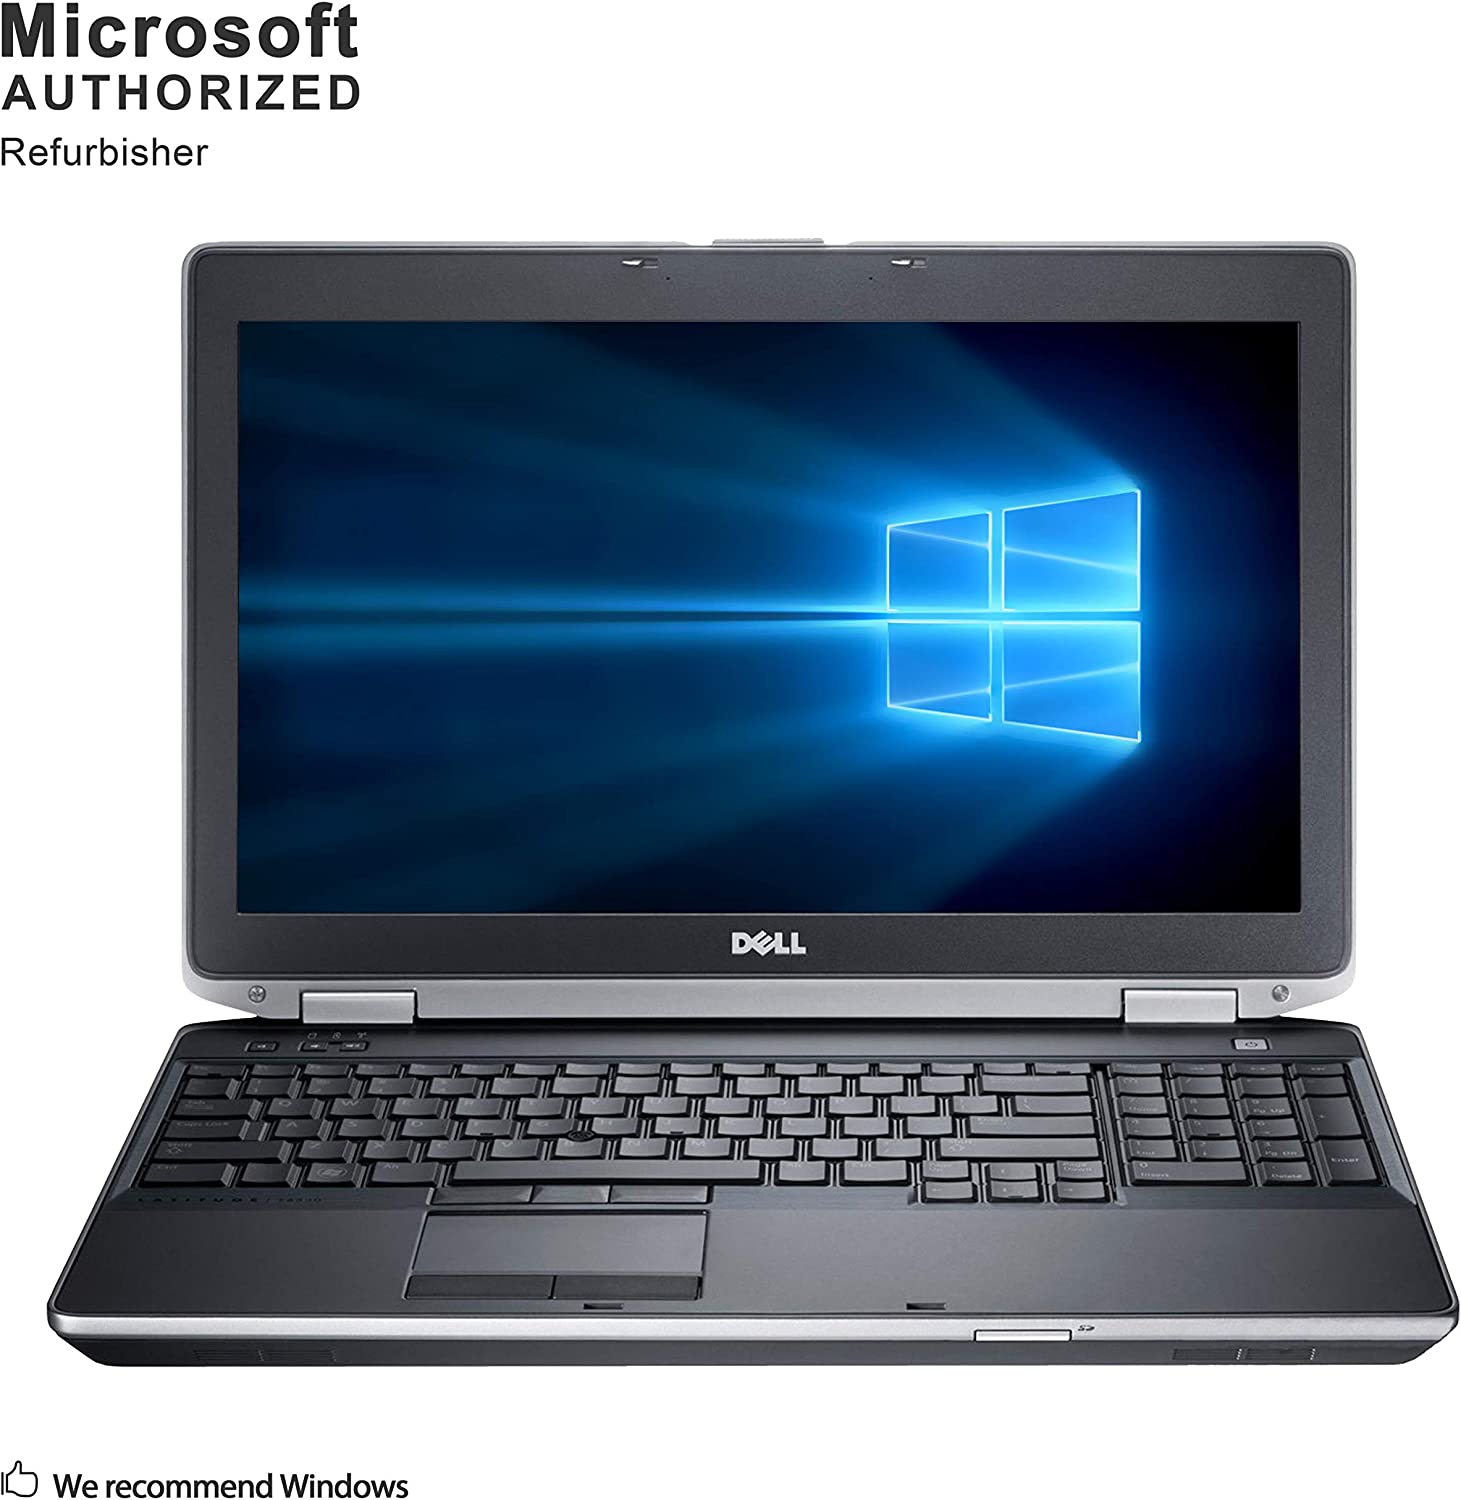 Dell Latitude E6530 15.6 Inch Business Laptop, Intel Core i5-3320M up to 3.3GHz, 4G DDR3, 500G, DVD, WiFi, VGA, HDMI, Win 10 Pro 64 Bit Multi-Language Support English/French/Spanish(Renewed)